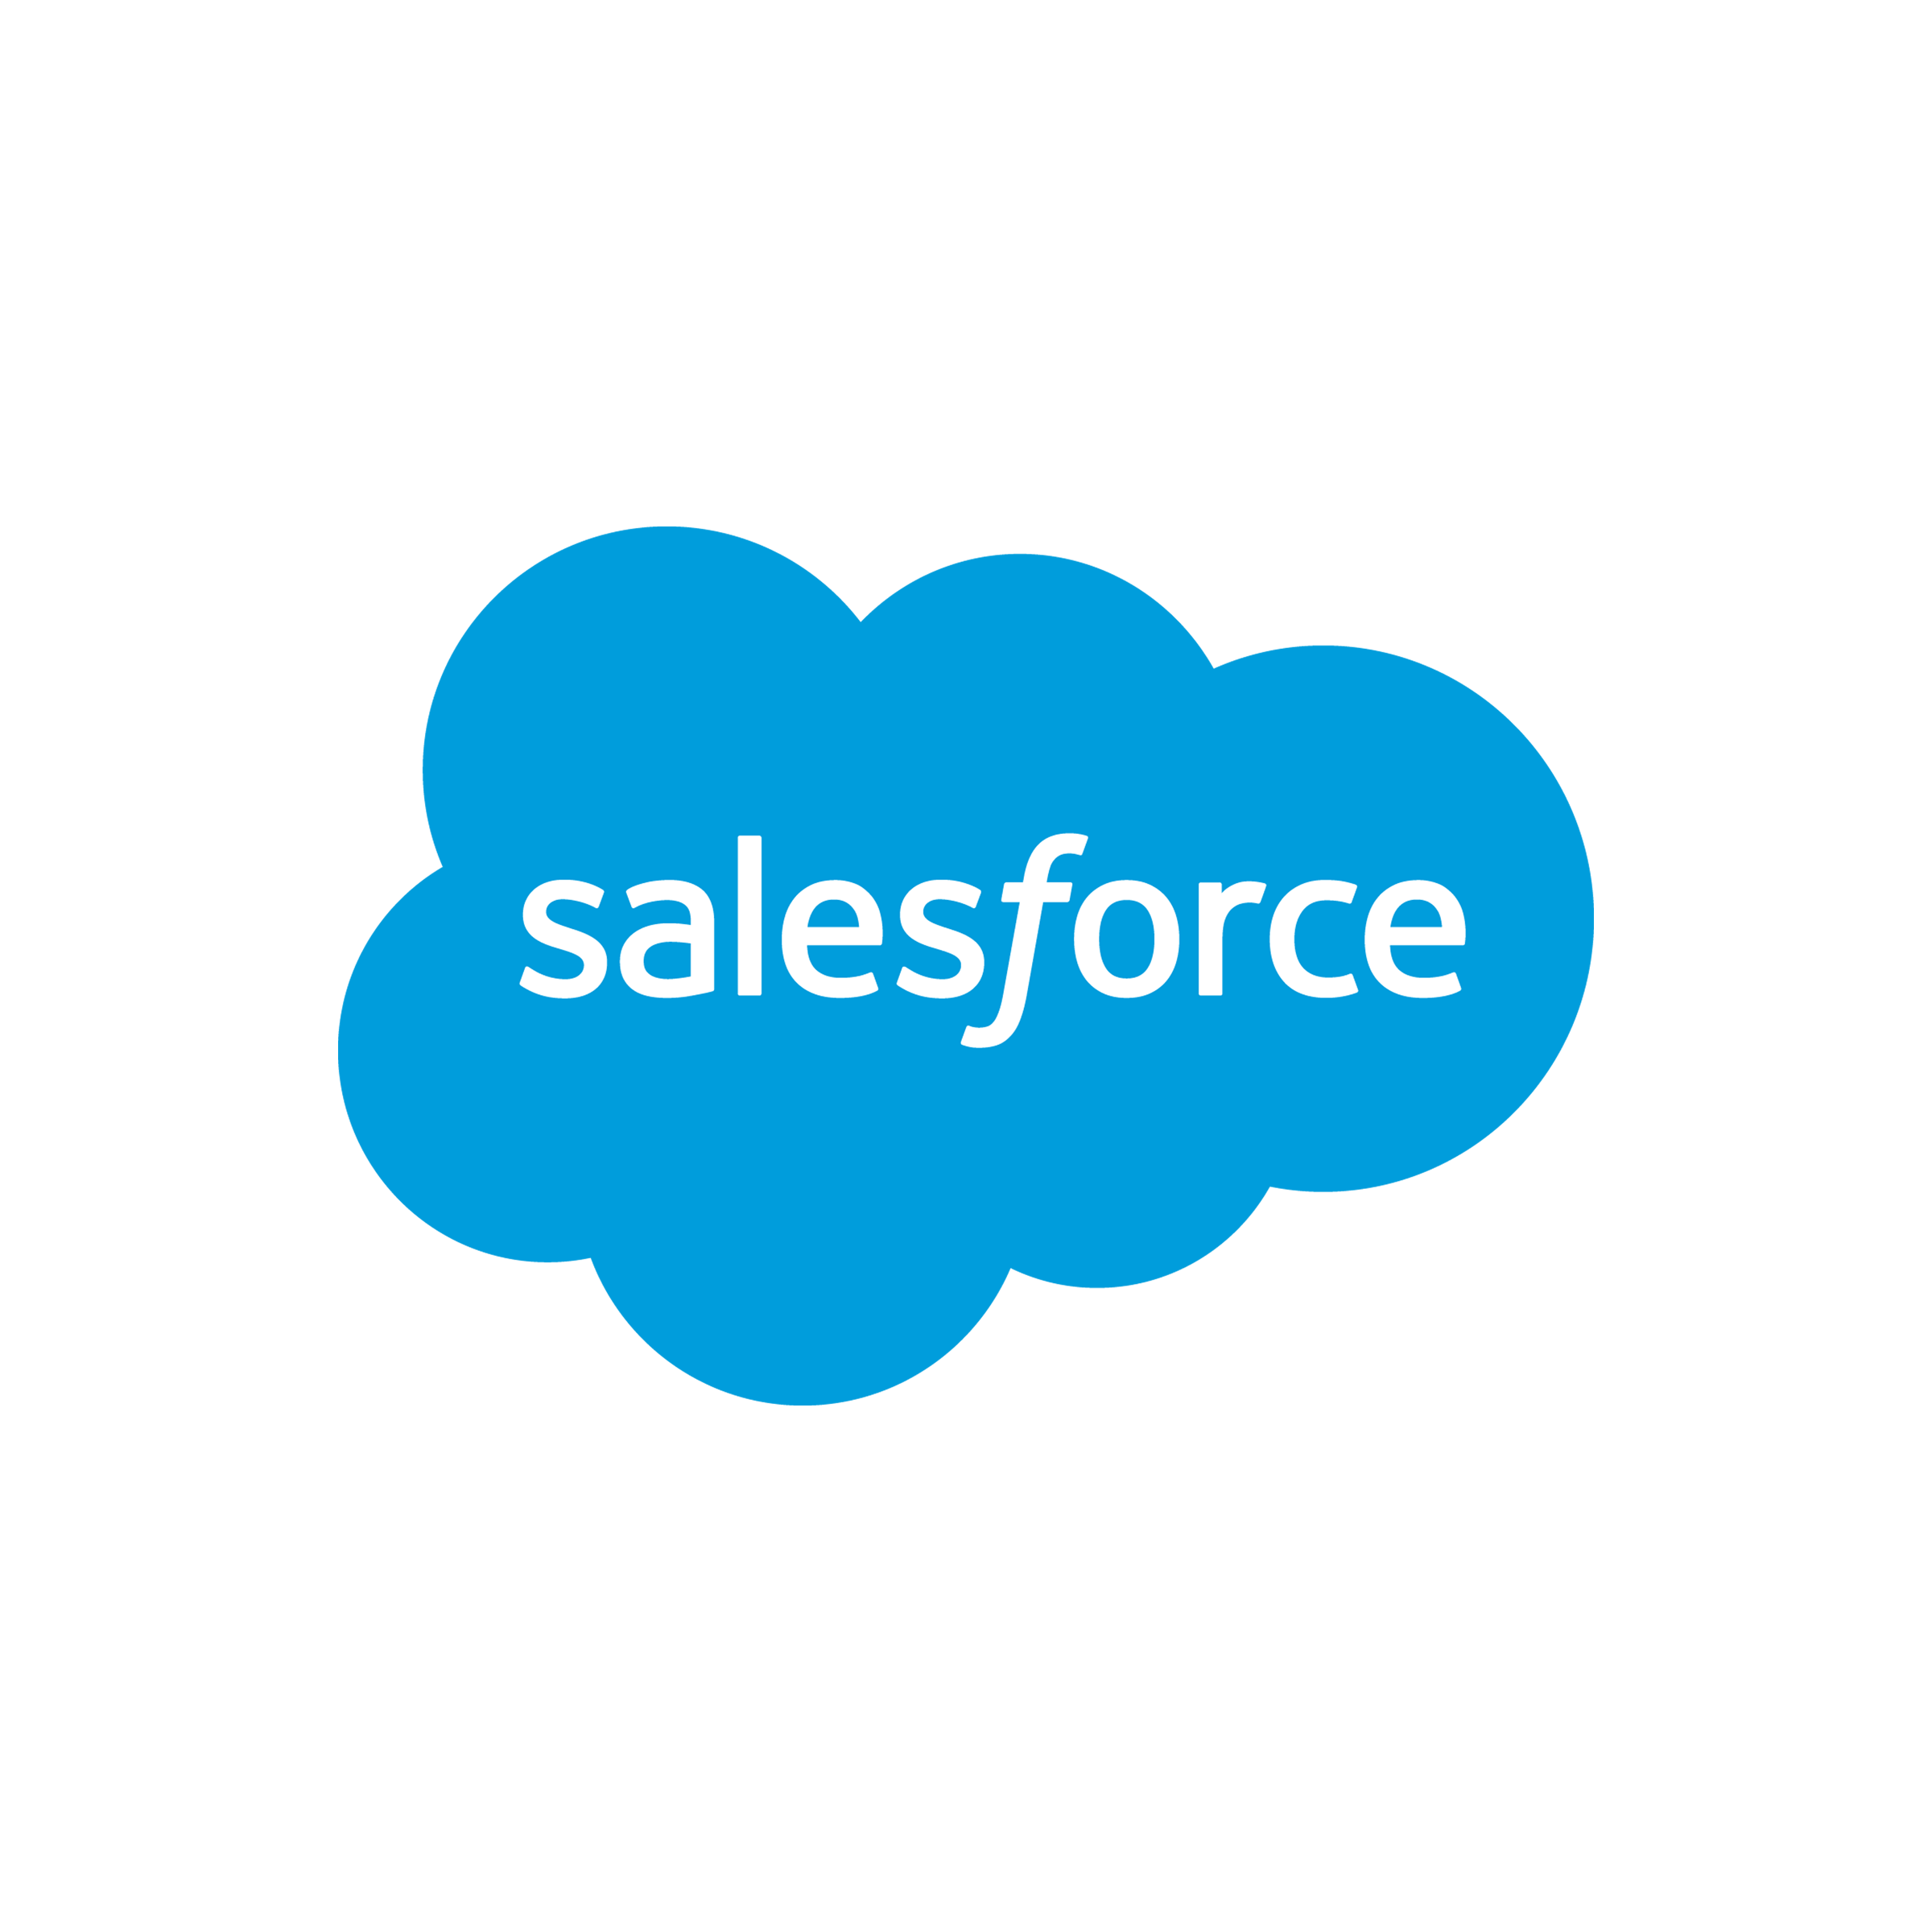 ٍSalesforce